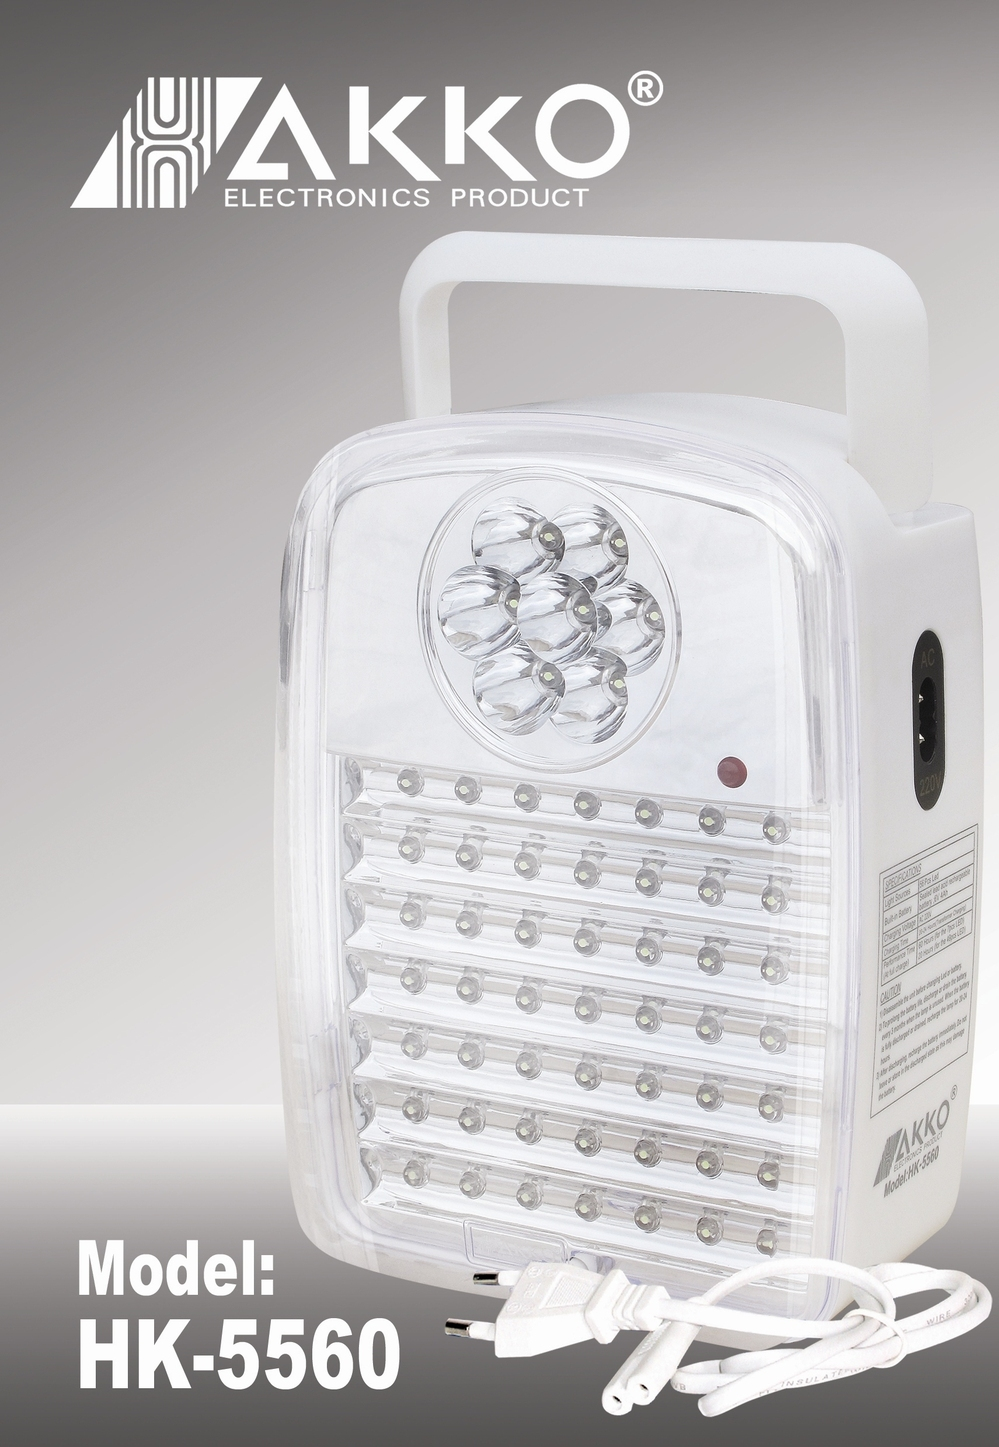 220V Rechargeable Portable Emergency lights with 56pcs LED